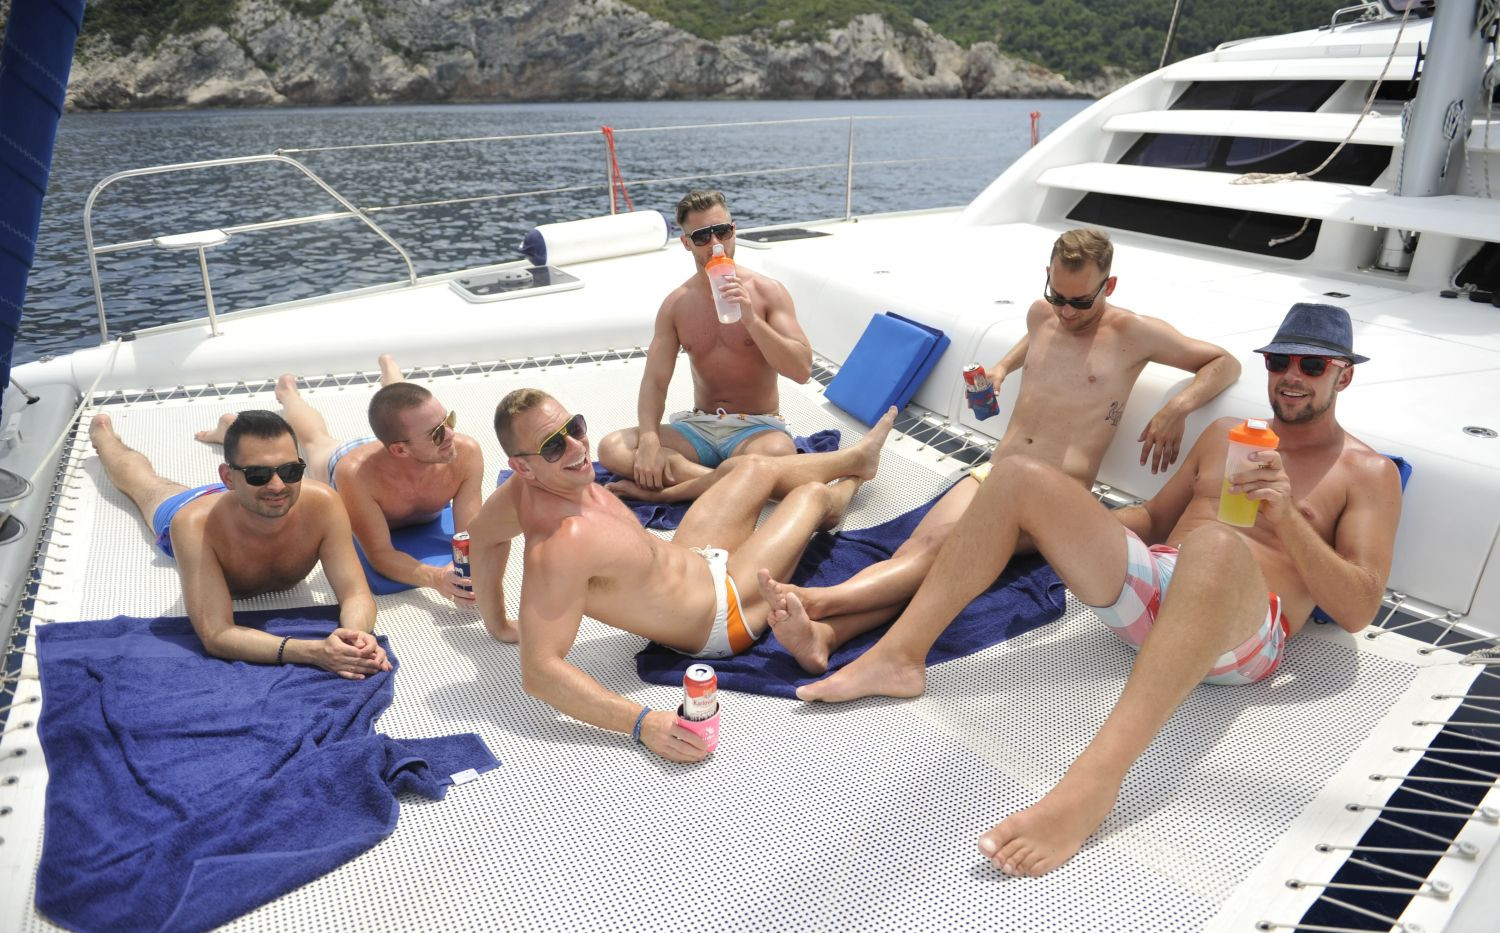 Luxury Gay Holiday!